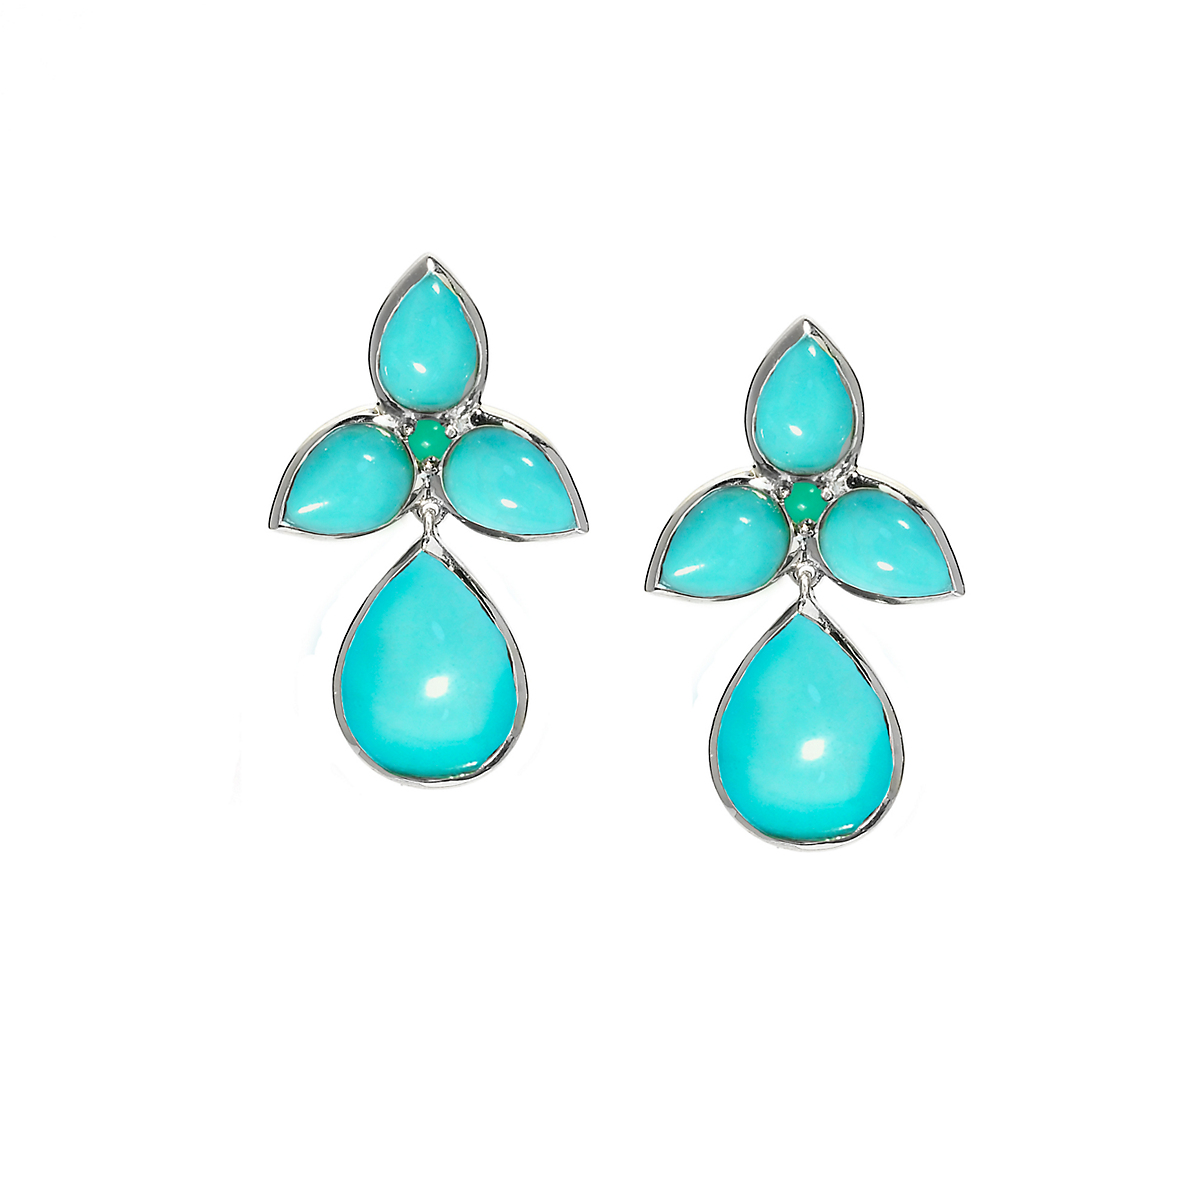 Elizabeth Showers Turquoise & Chrysoprase Mariposa Teardrop Earrings